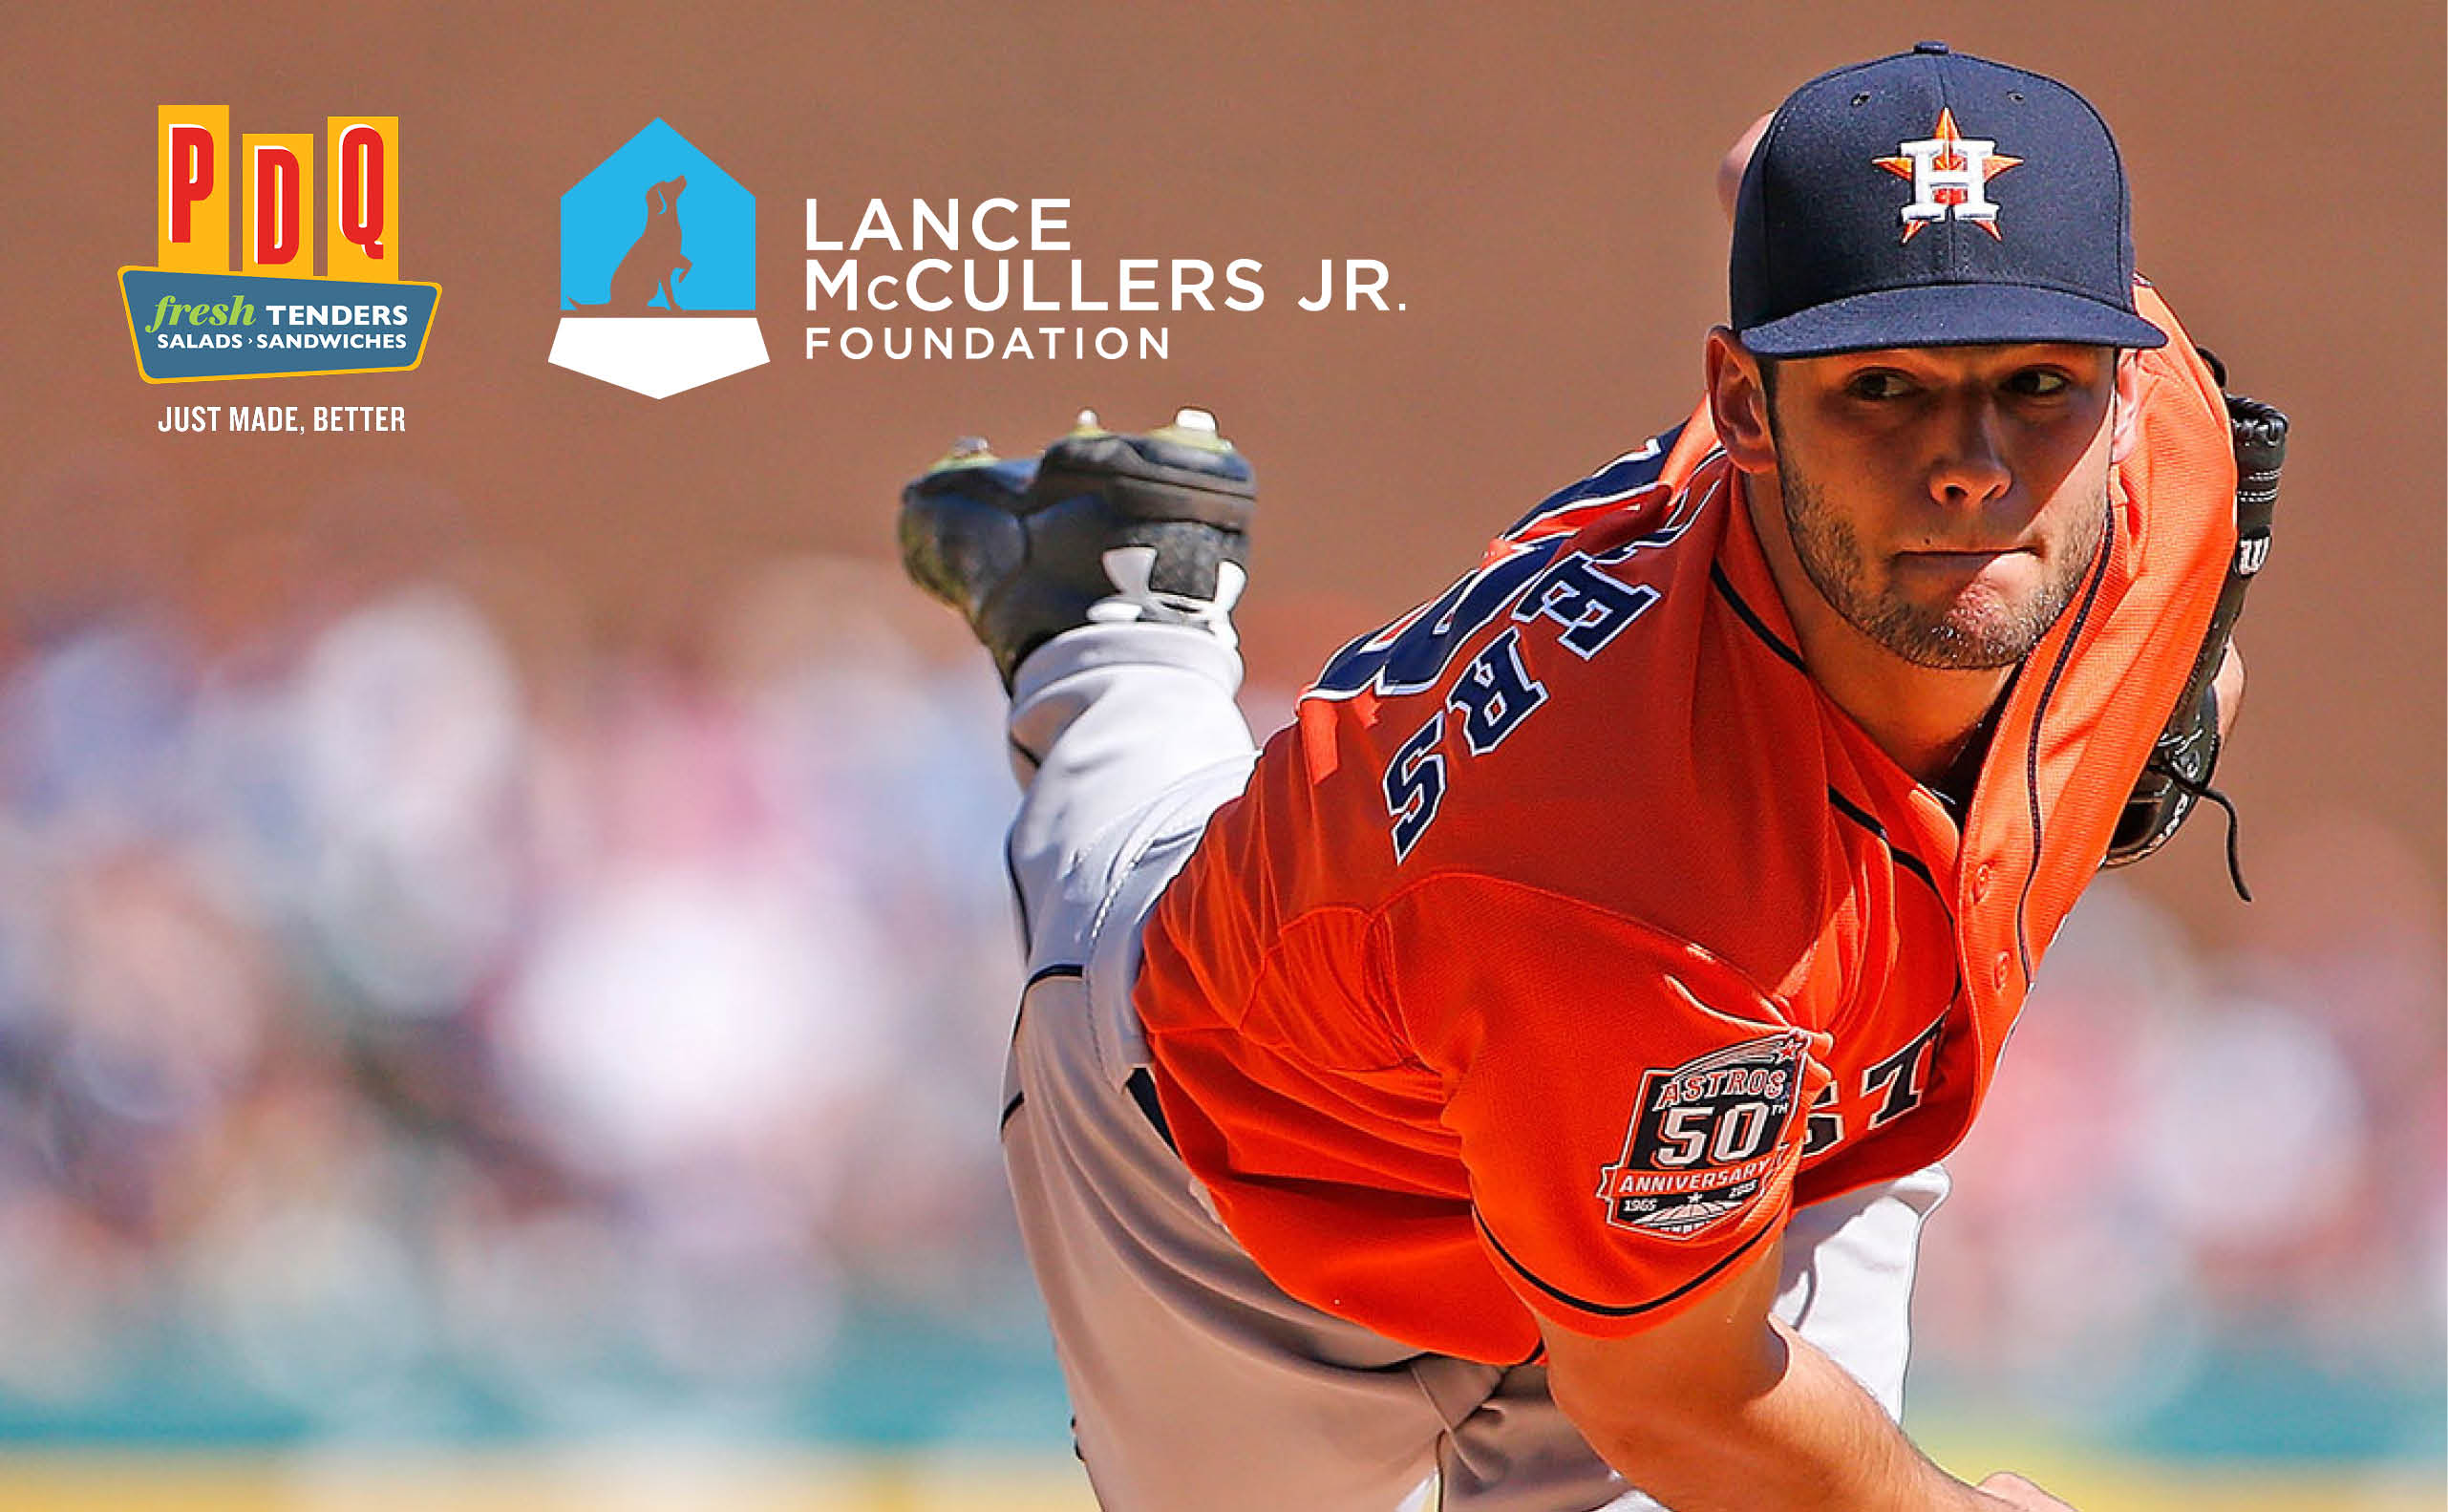 McCullers_NewsGraphic